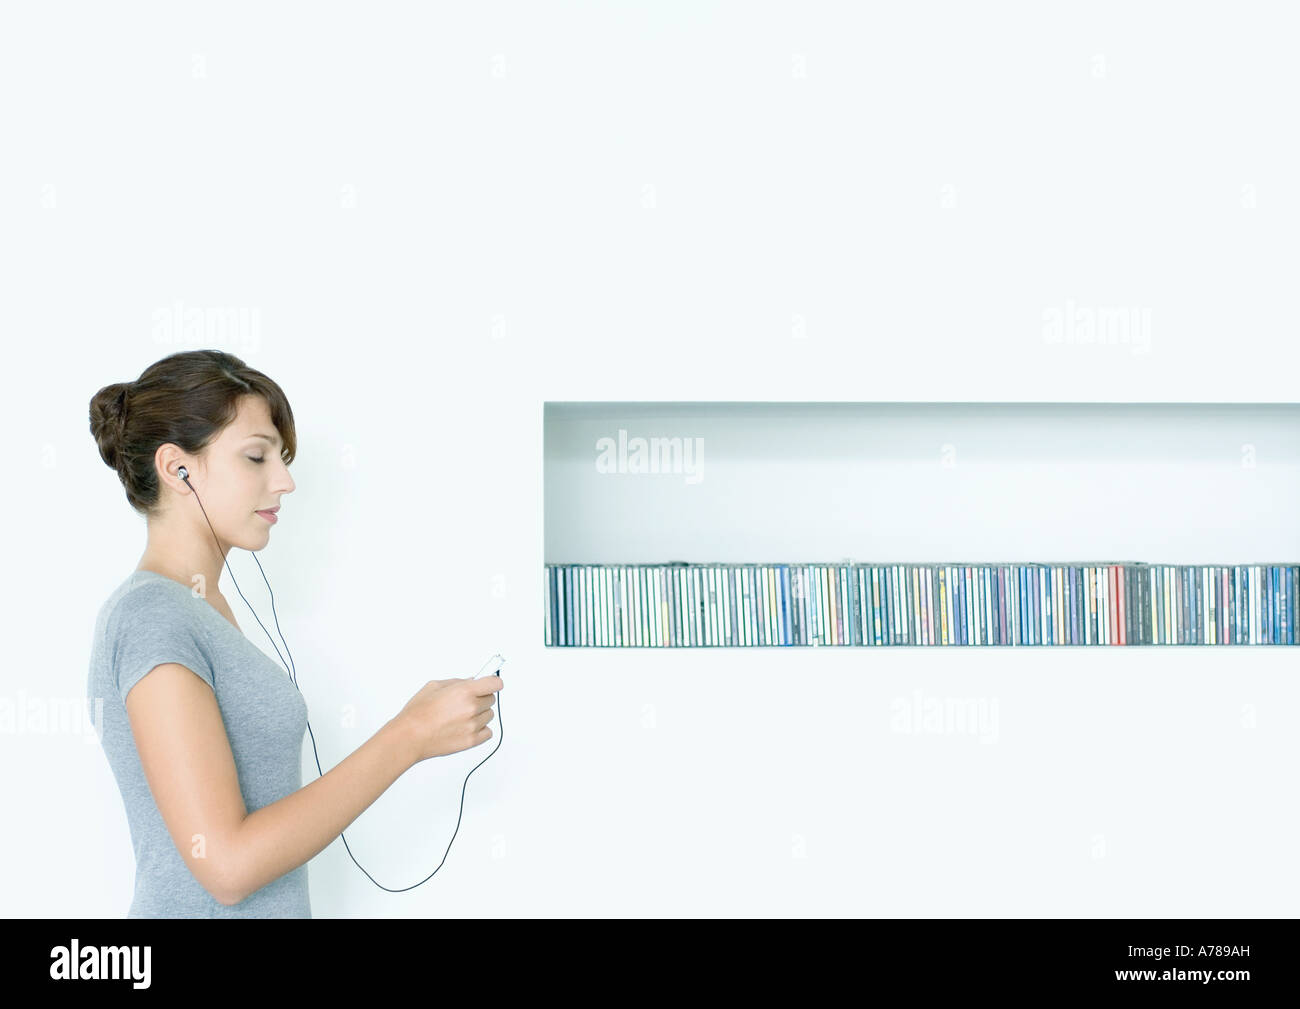 Young woman standing, listening to MP3 player, next to row of CDs, eyes closed - Stock Image